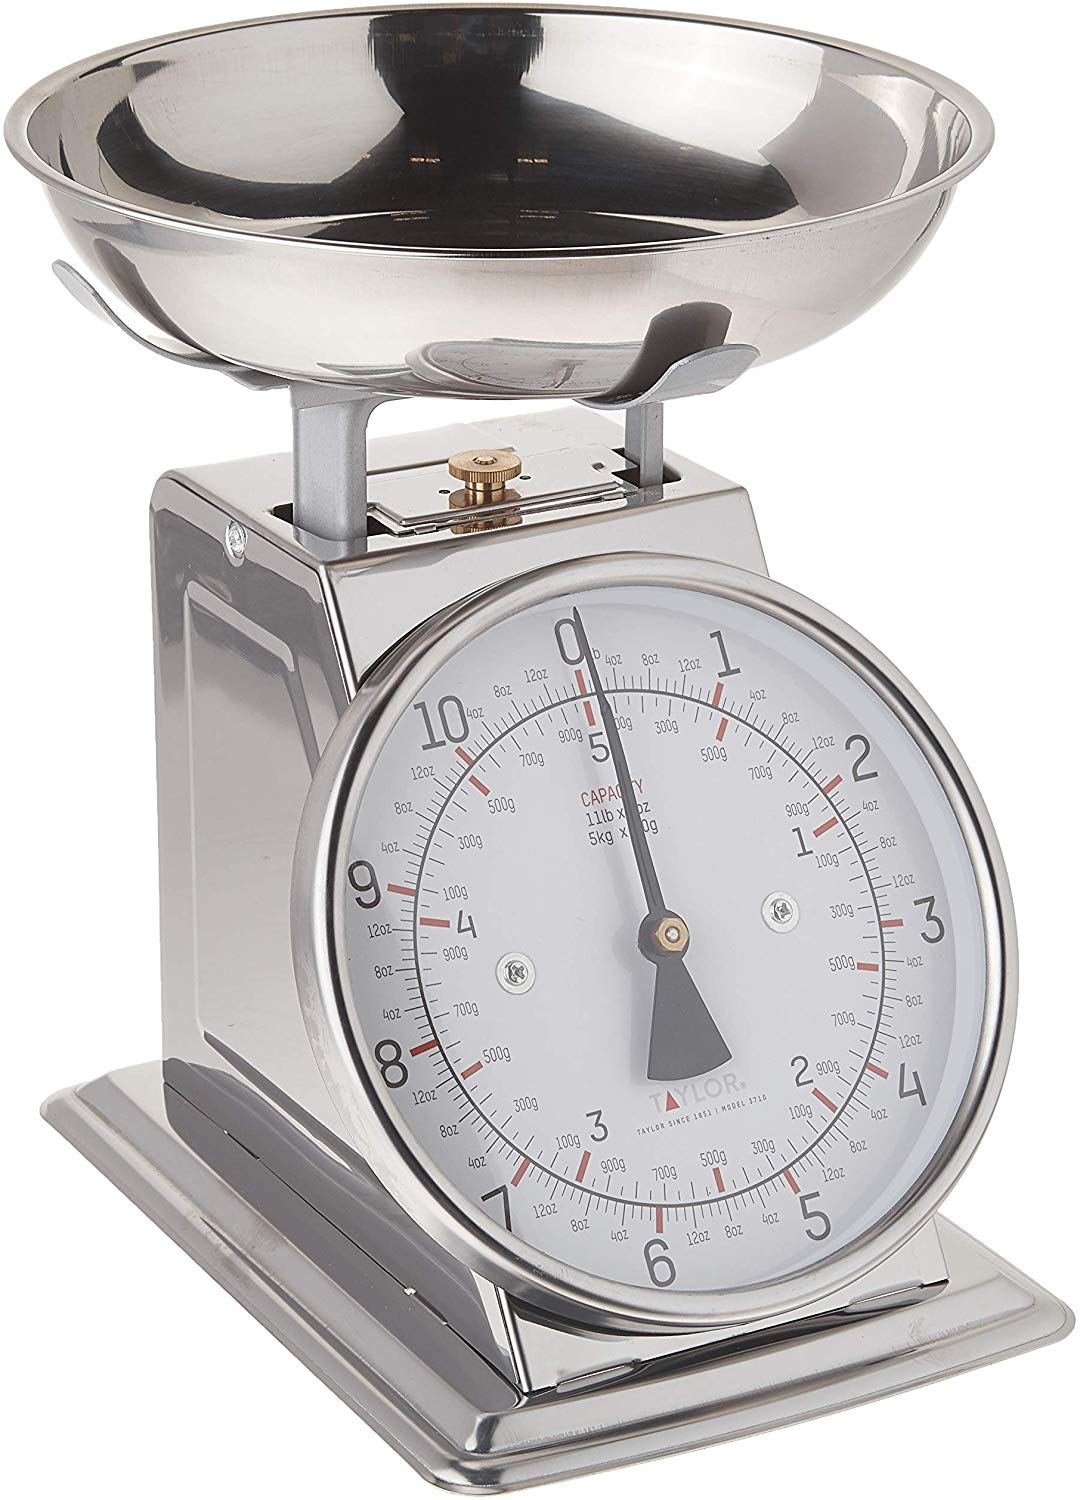 Taylor stainless steel analog kitchen scale